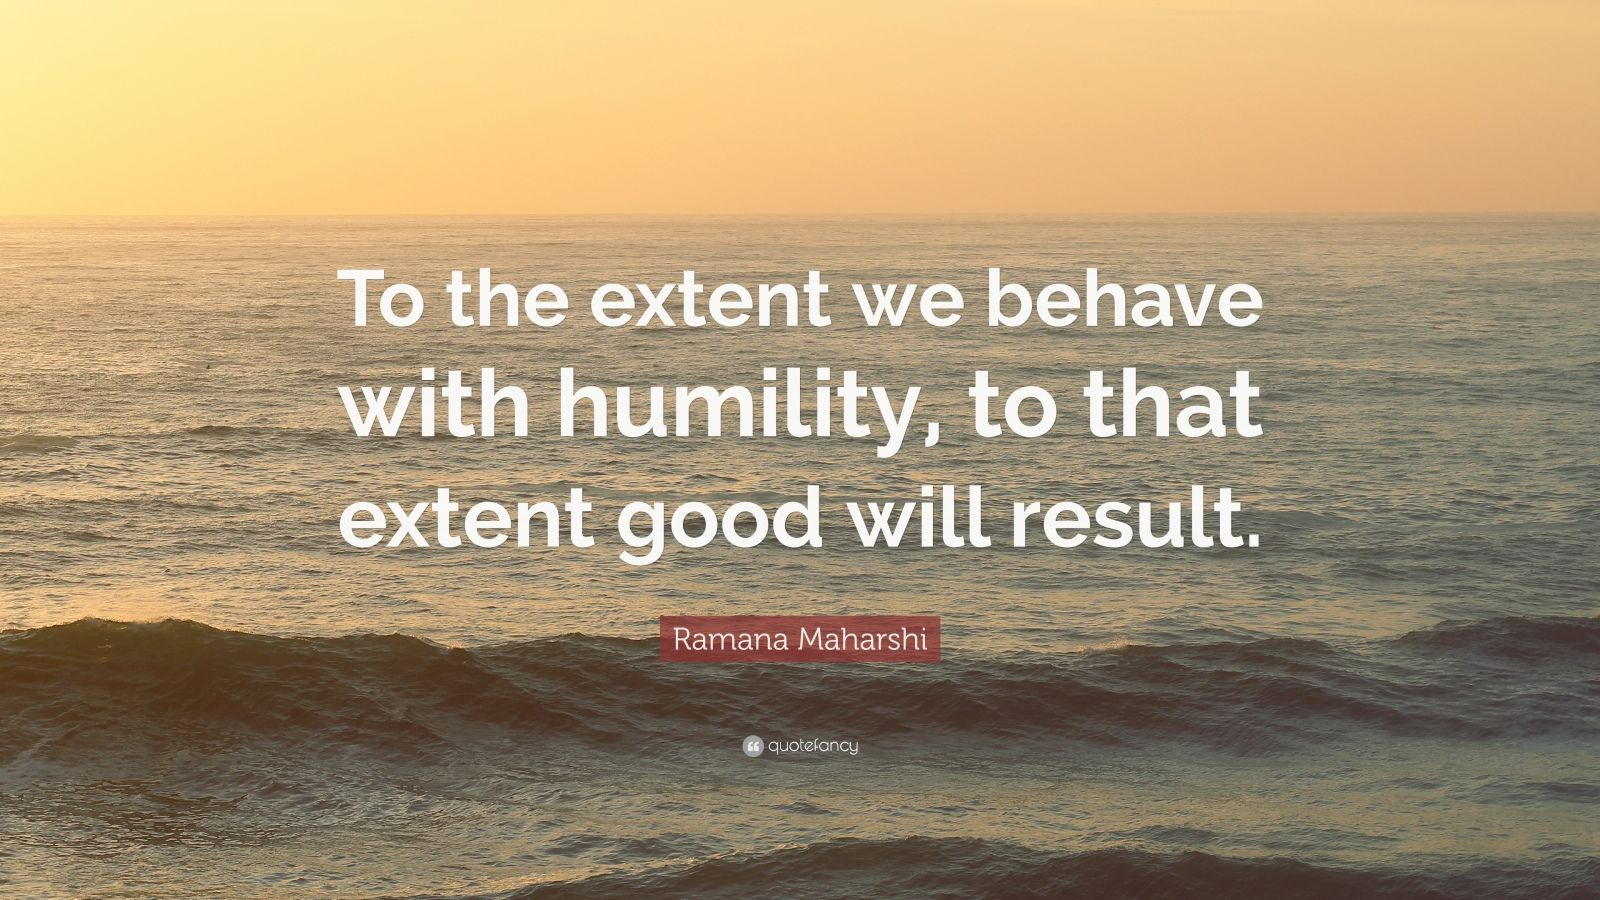 """Ramana Maharshi Quote: """"To the extent we behave with humility, to that extent good will result."""""""